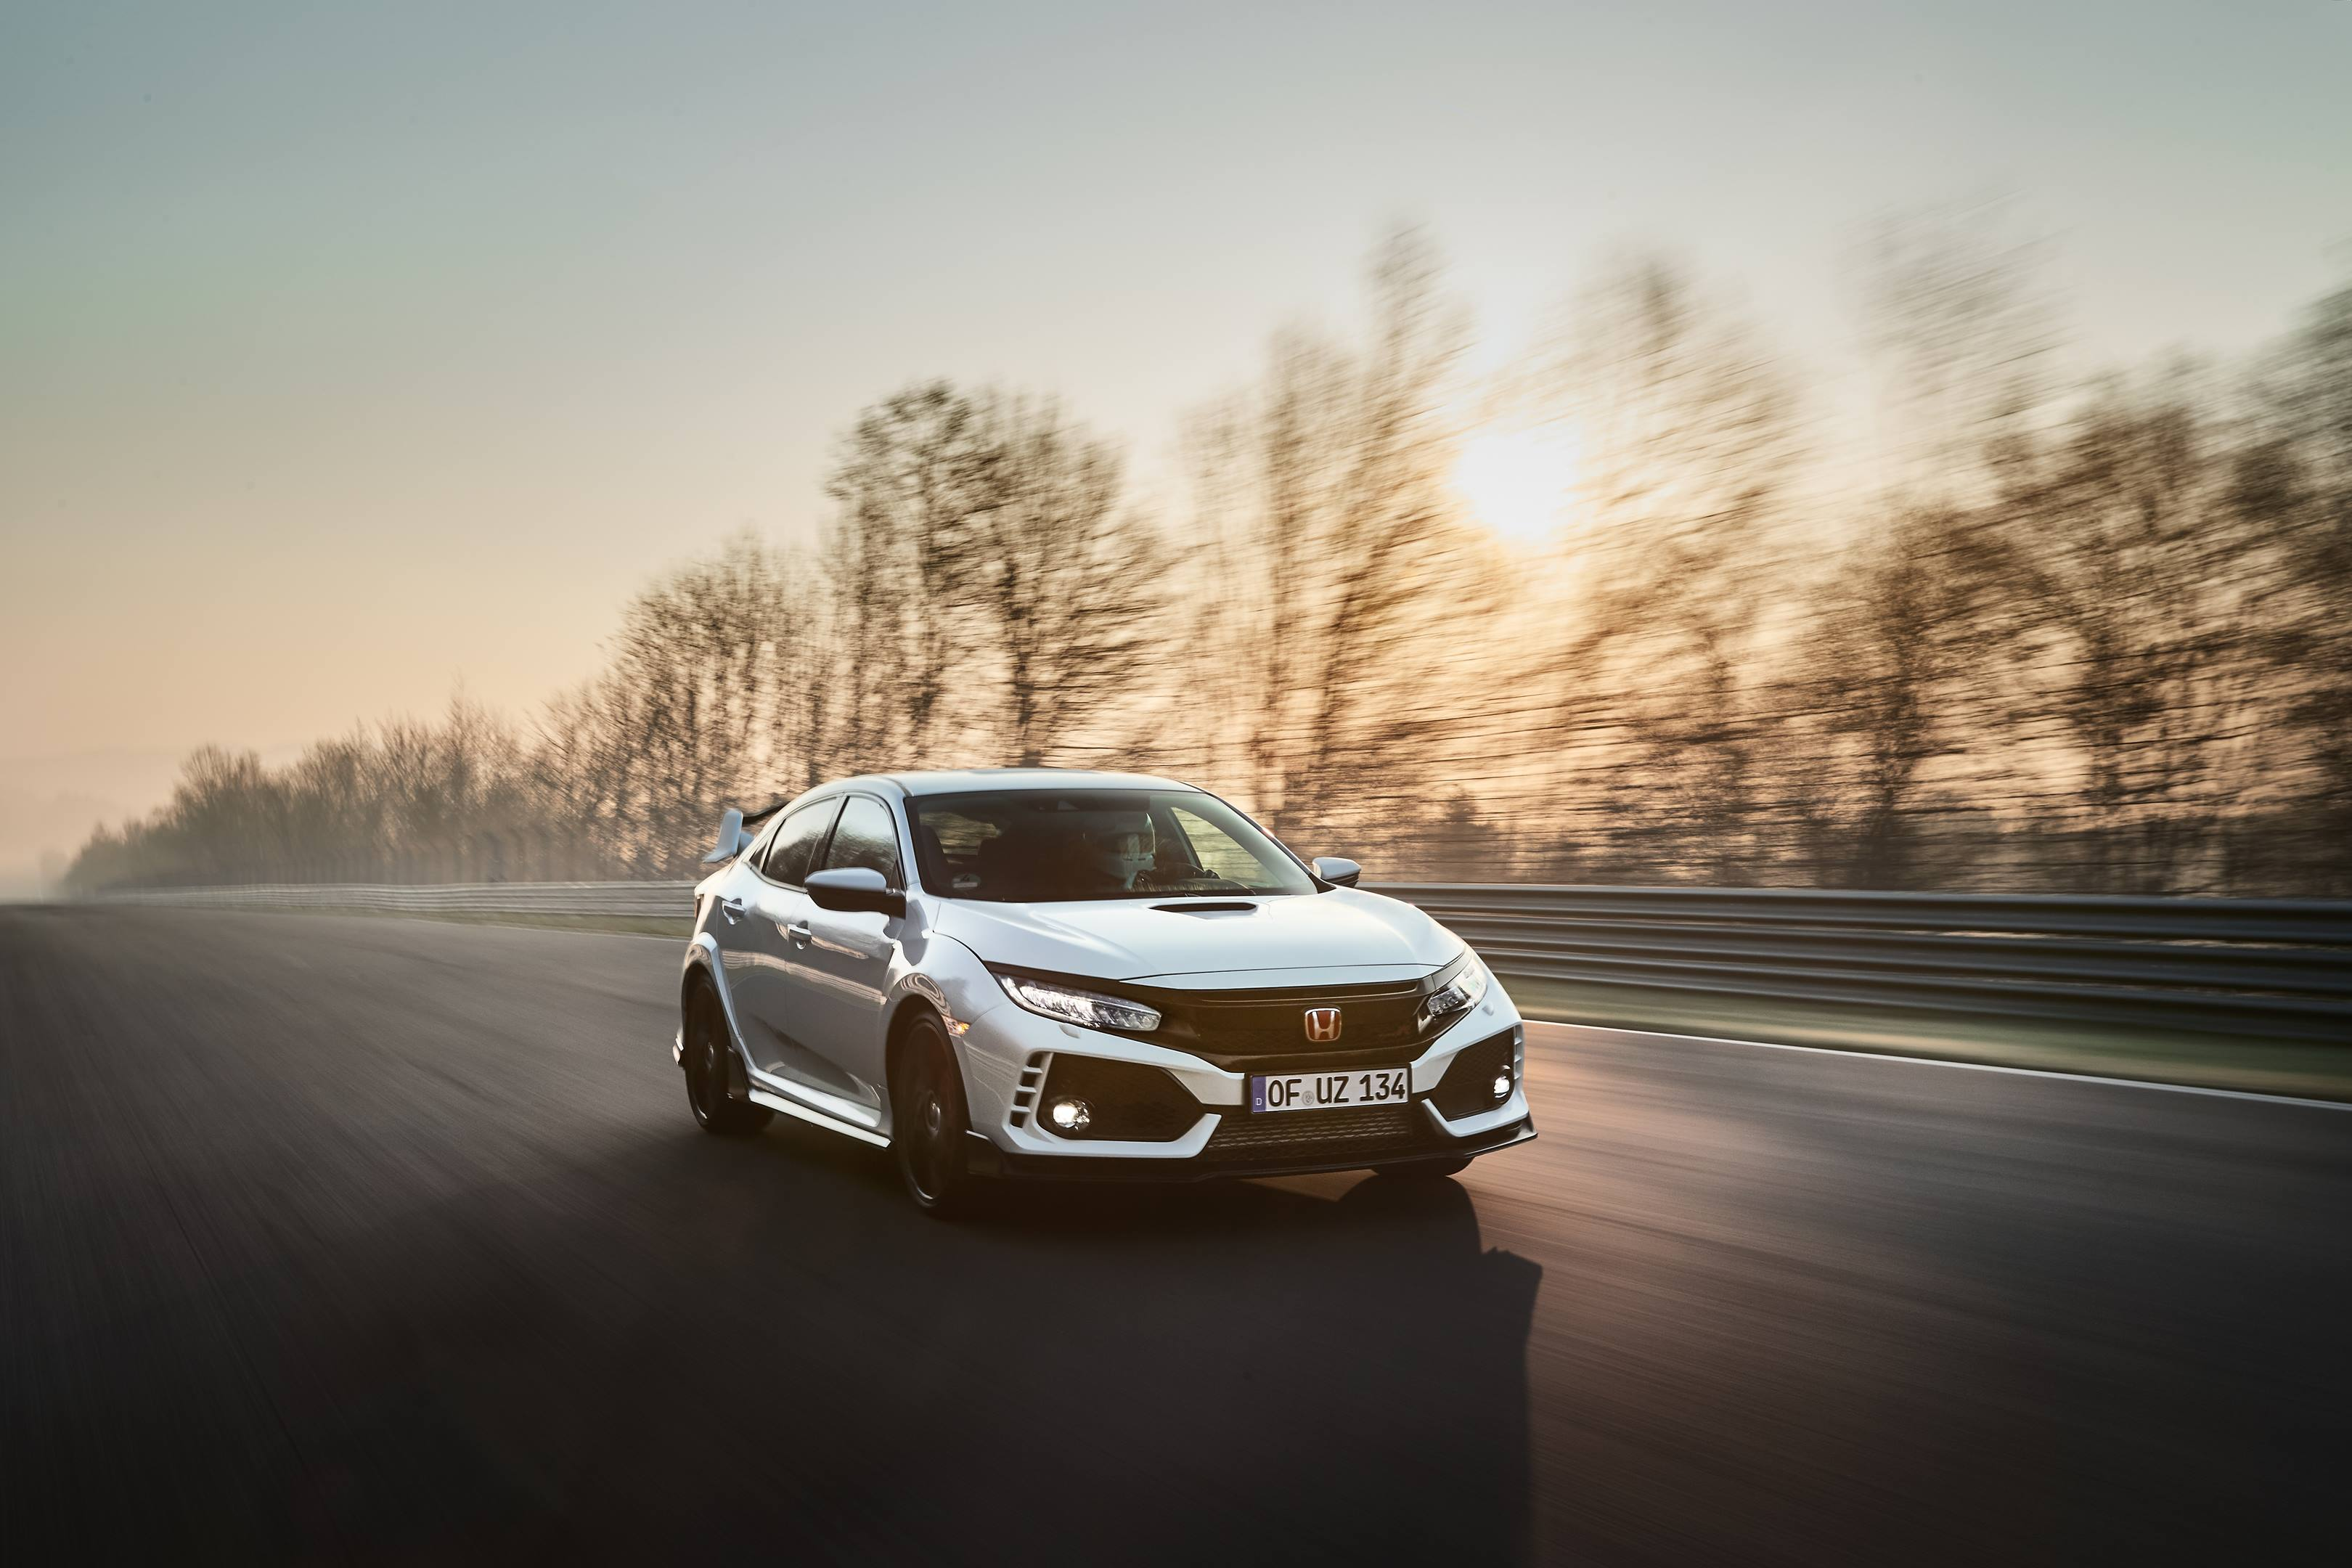 2017 Honda Civic Type R front 3/4 on the track